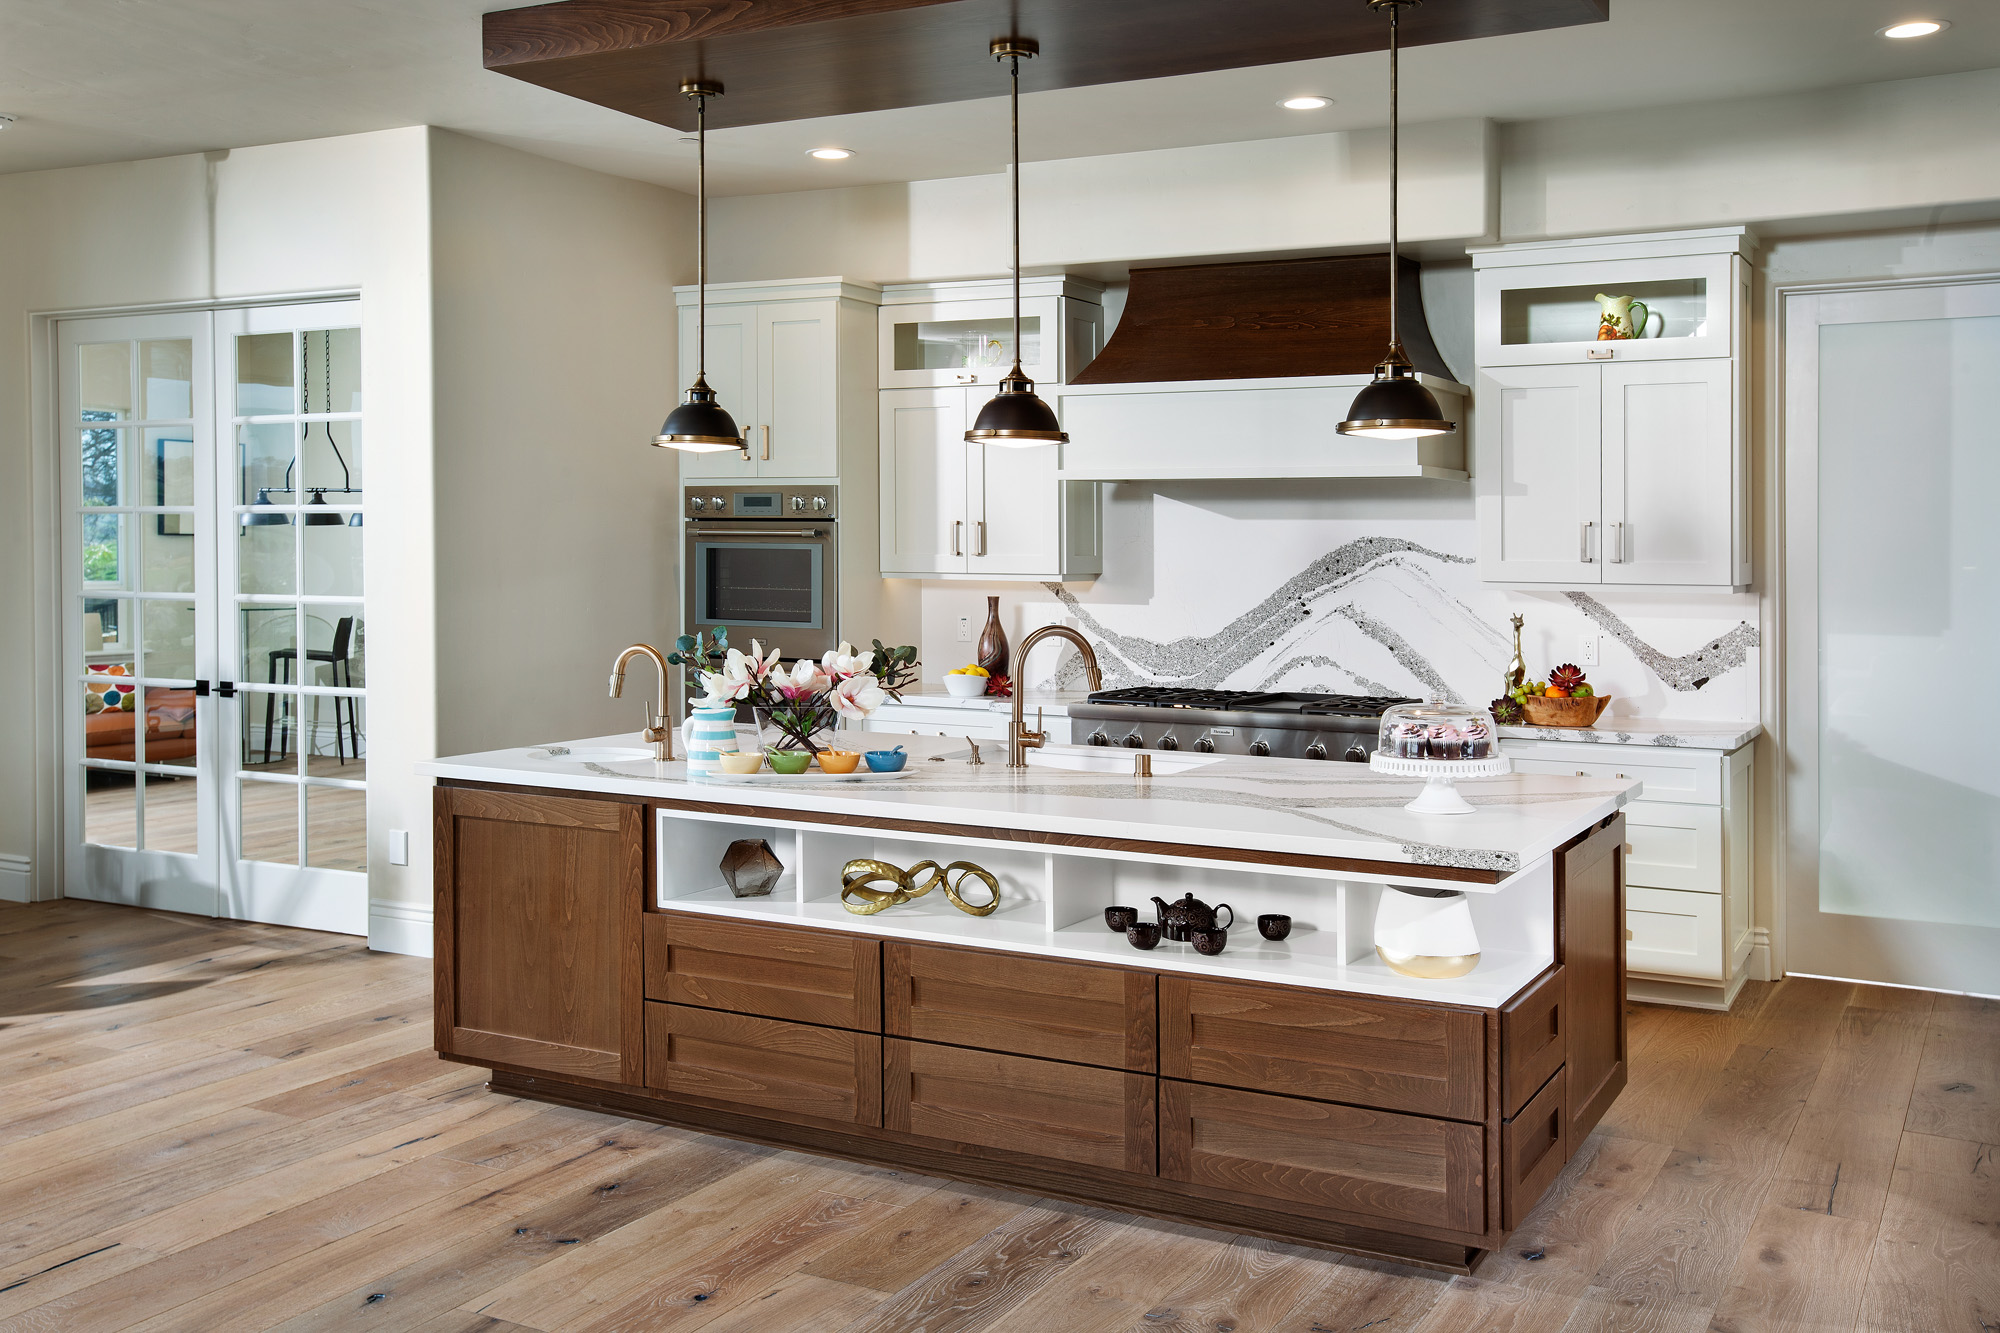 Shaker style cabinets design